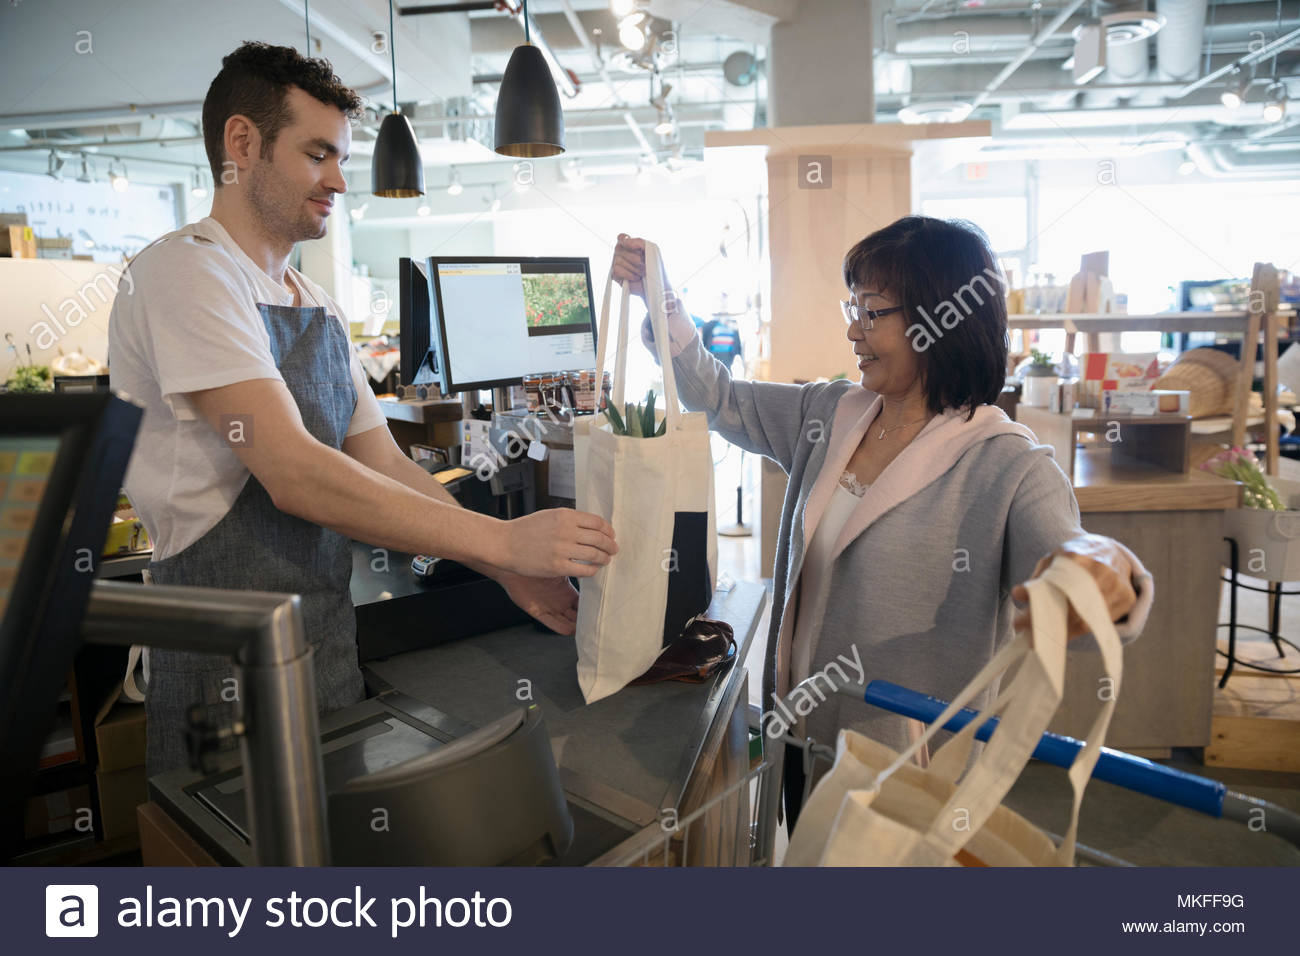 Male worker helping senior woman with reusable bags at grocery store checkout - Stock Image